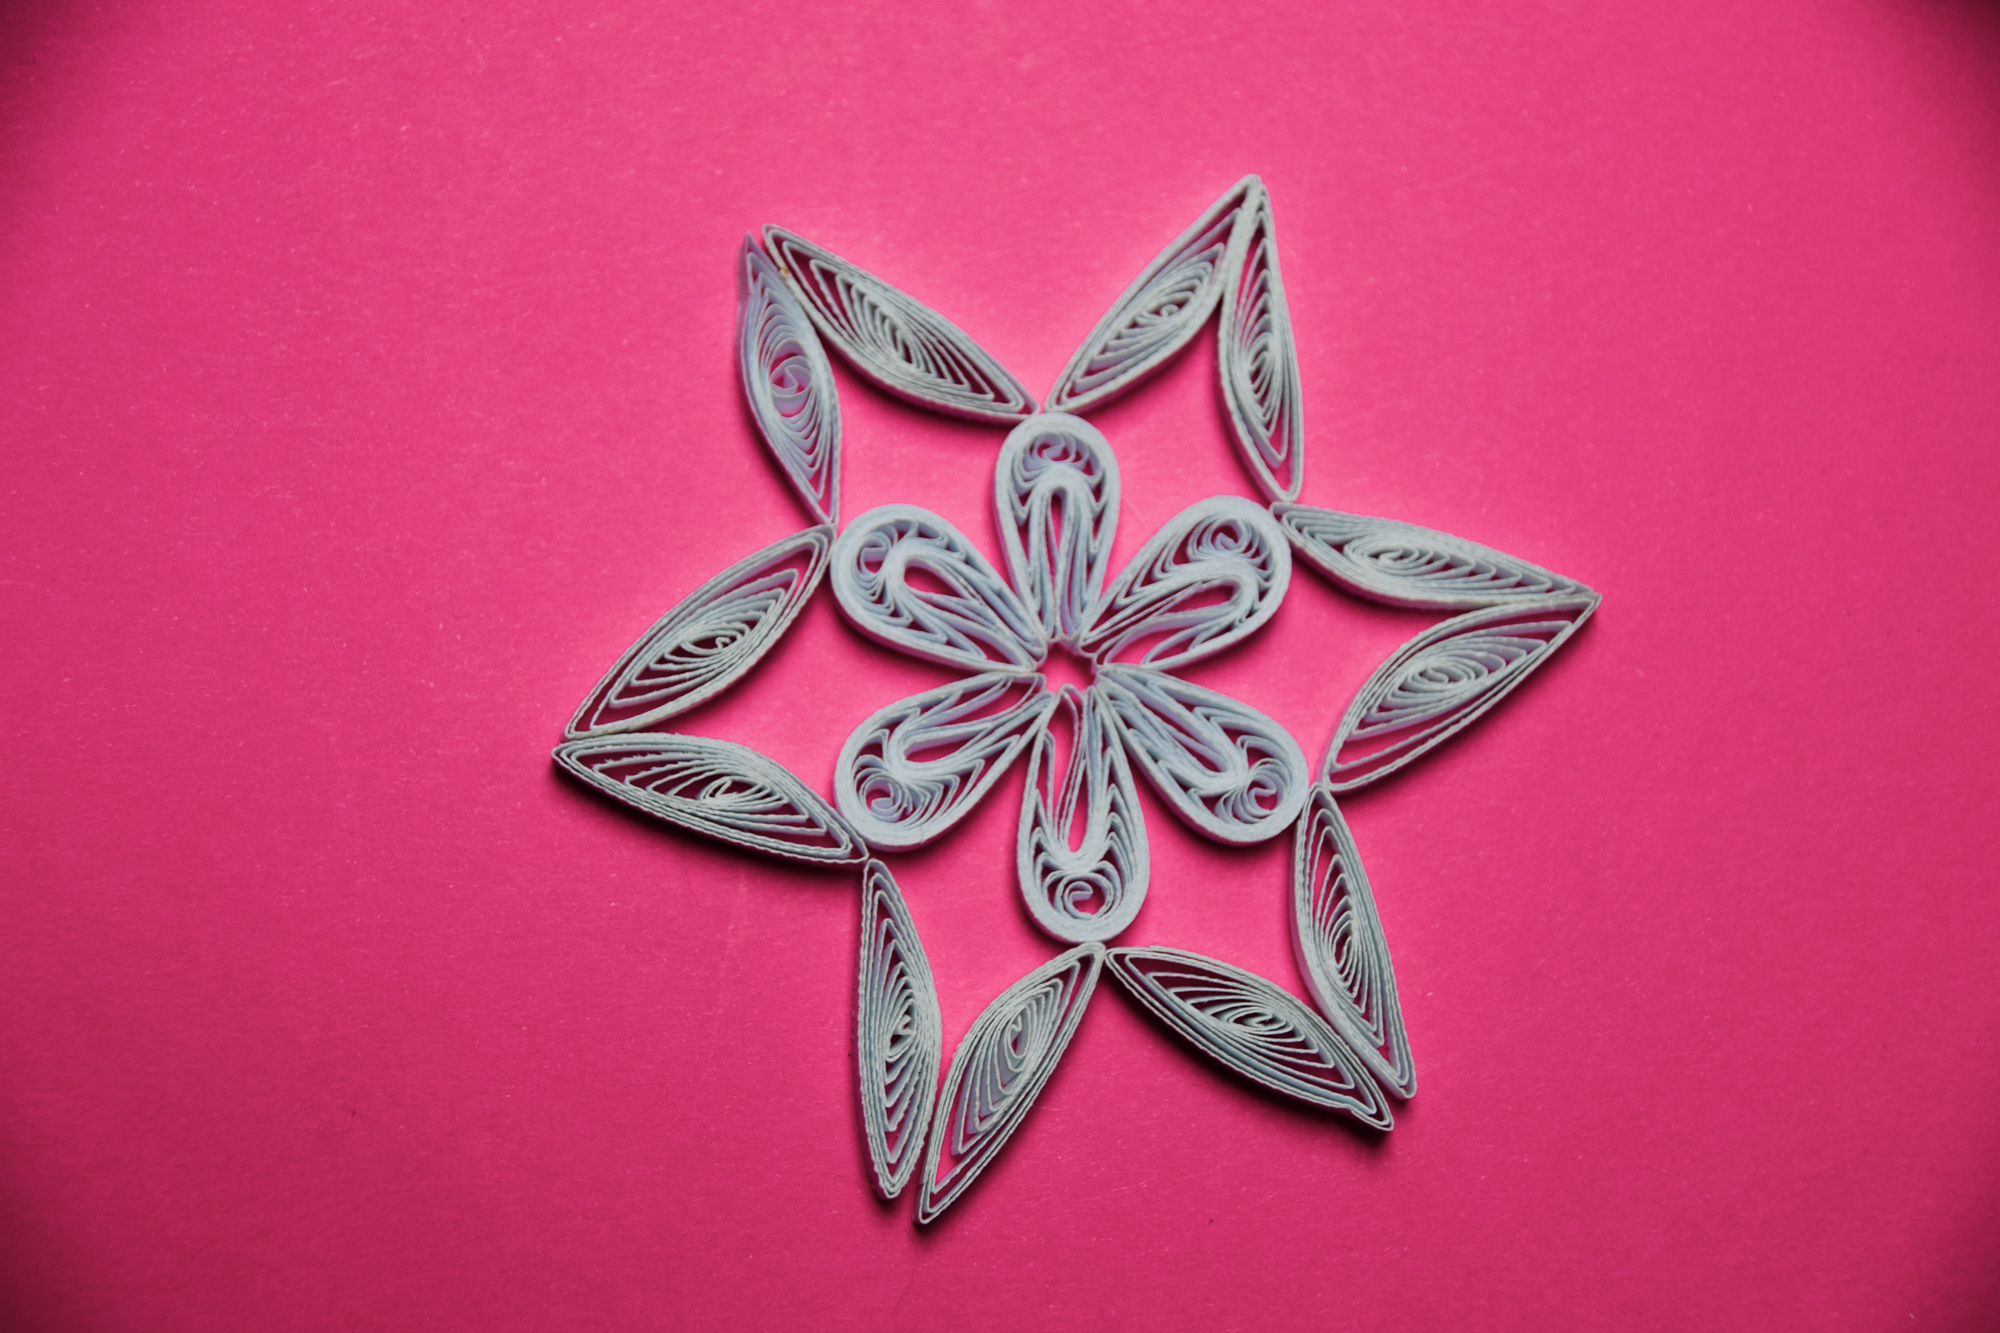 Easy DIY Paper Snowflake Quilling Tutorial to make handmade tree ornaments and gifts for friends #quilling #paperart #ornaments #christmas #crafts #homedecor #paper #tutorial #diy